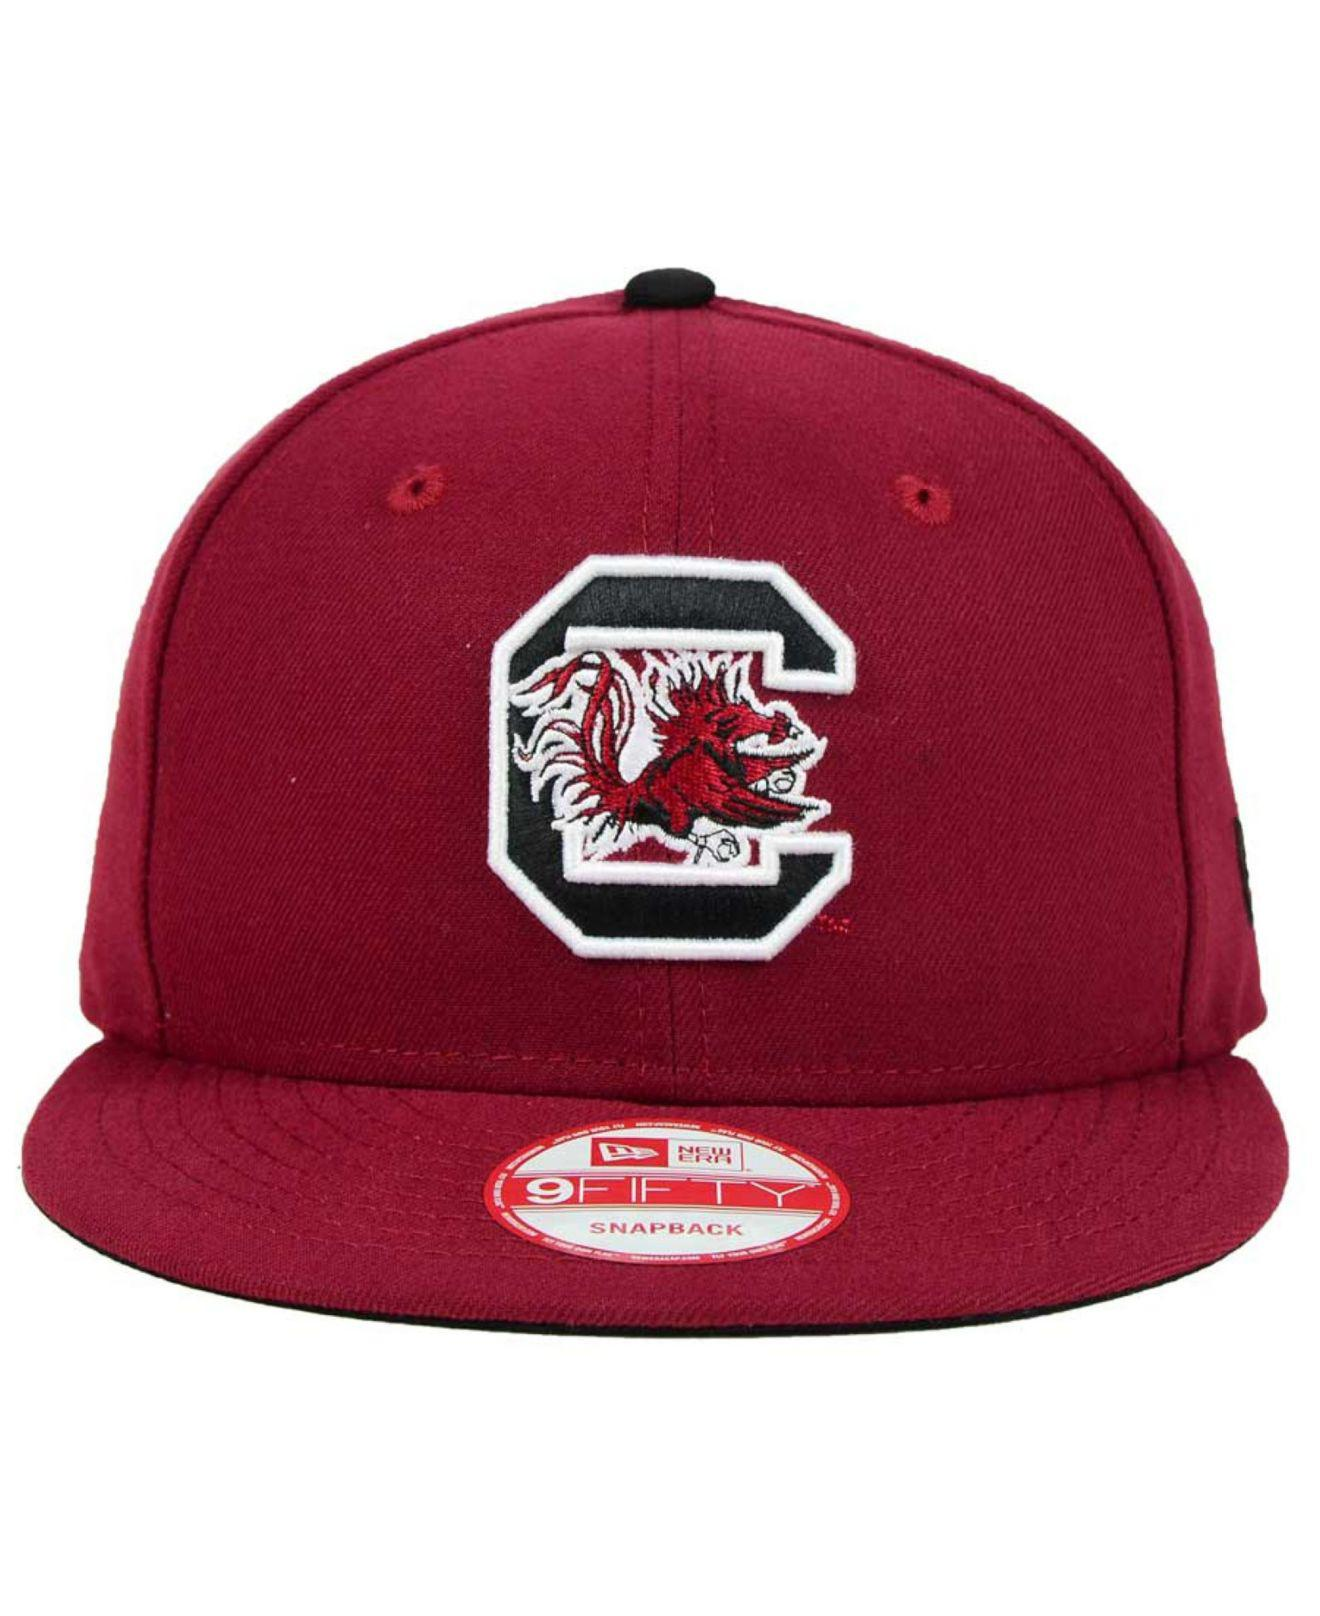 Lyst - KTZ South Carolina Gamecocks Core 9fifty Snapback Cap in Purple for  Men 96b7f4f4aab8